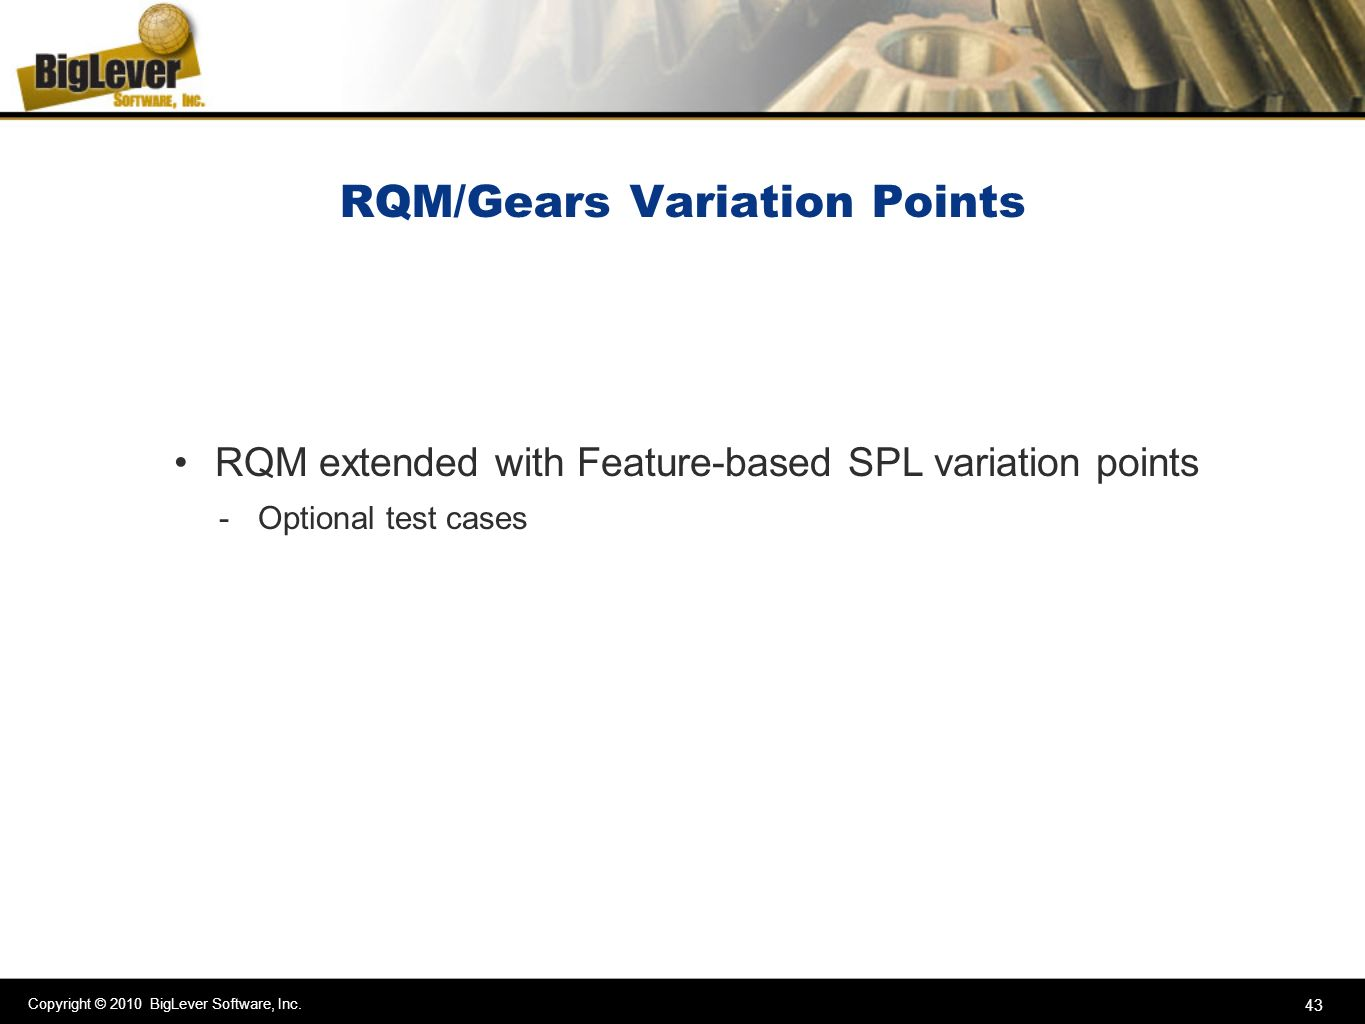 RQM/Gears Variation Points